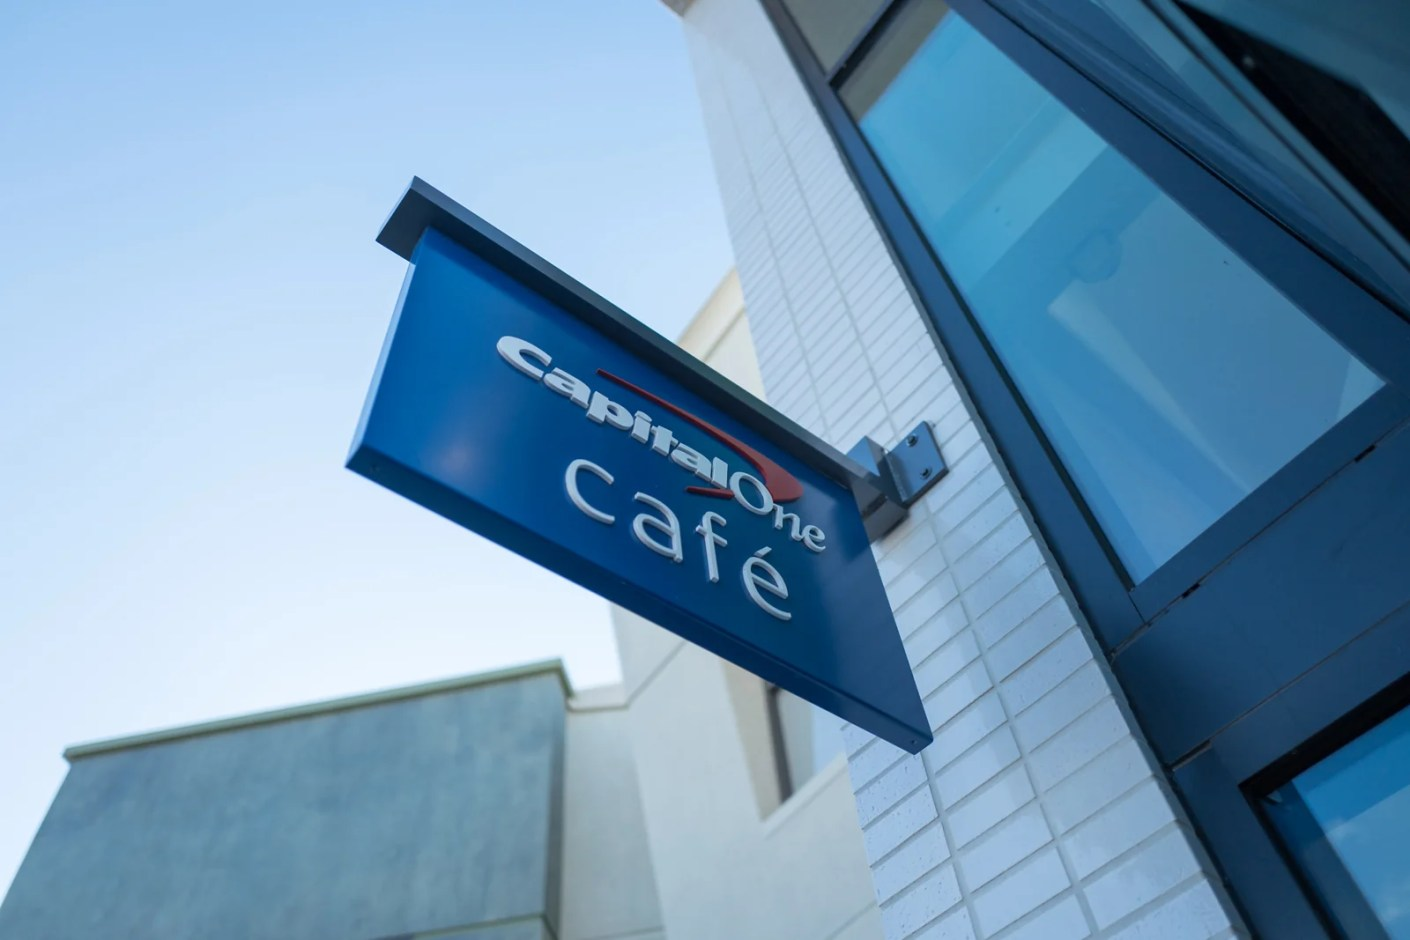 Capital One branches are called Capital One Cafe